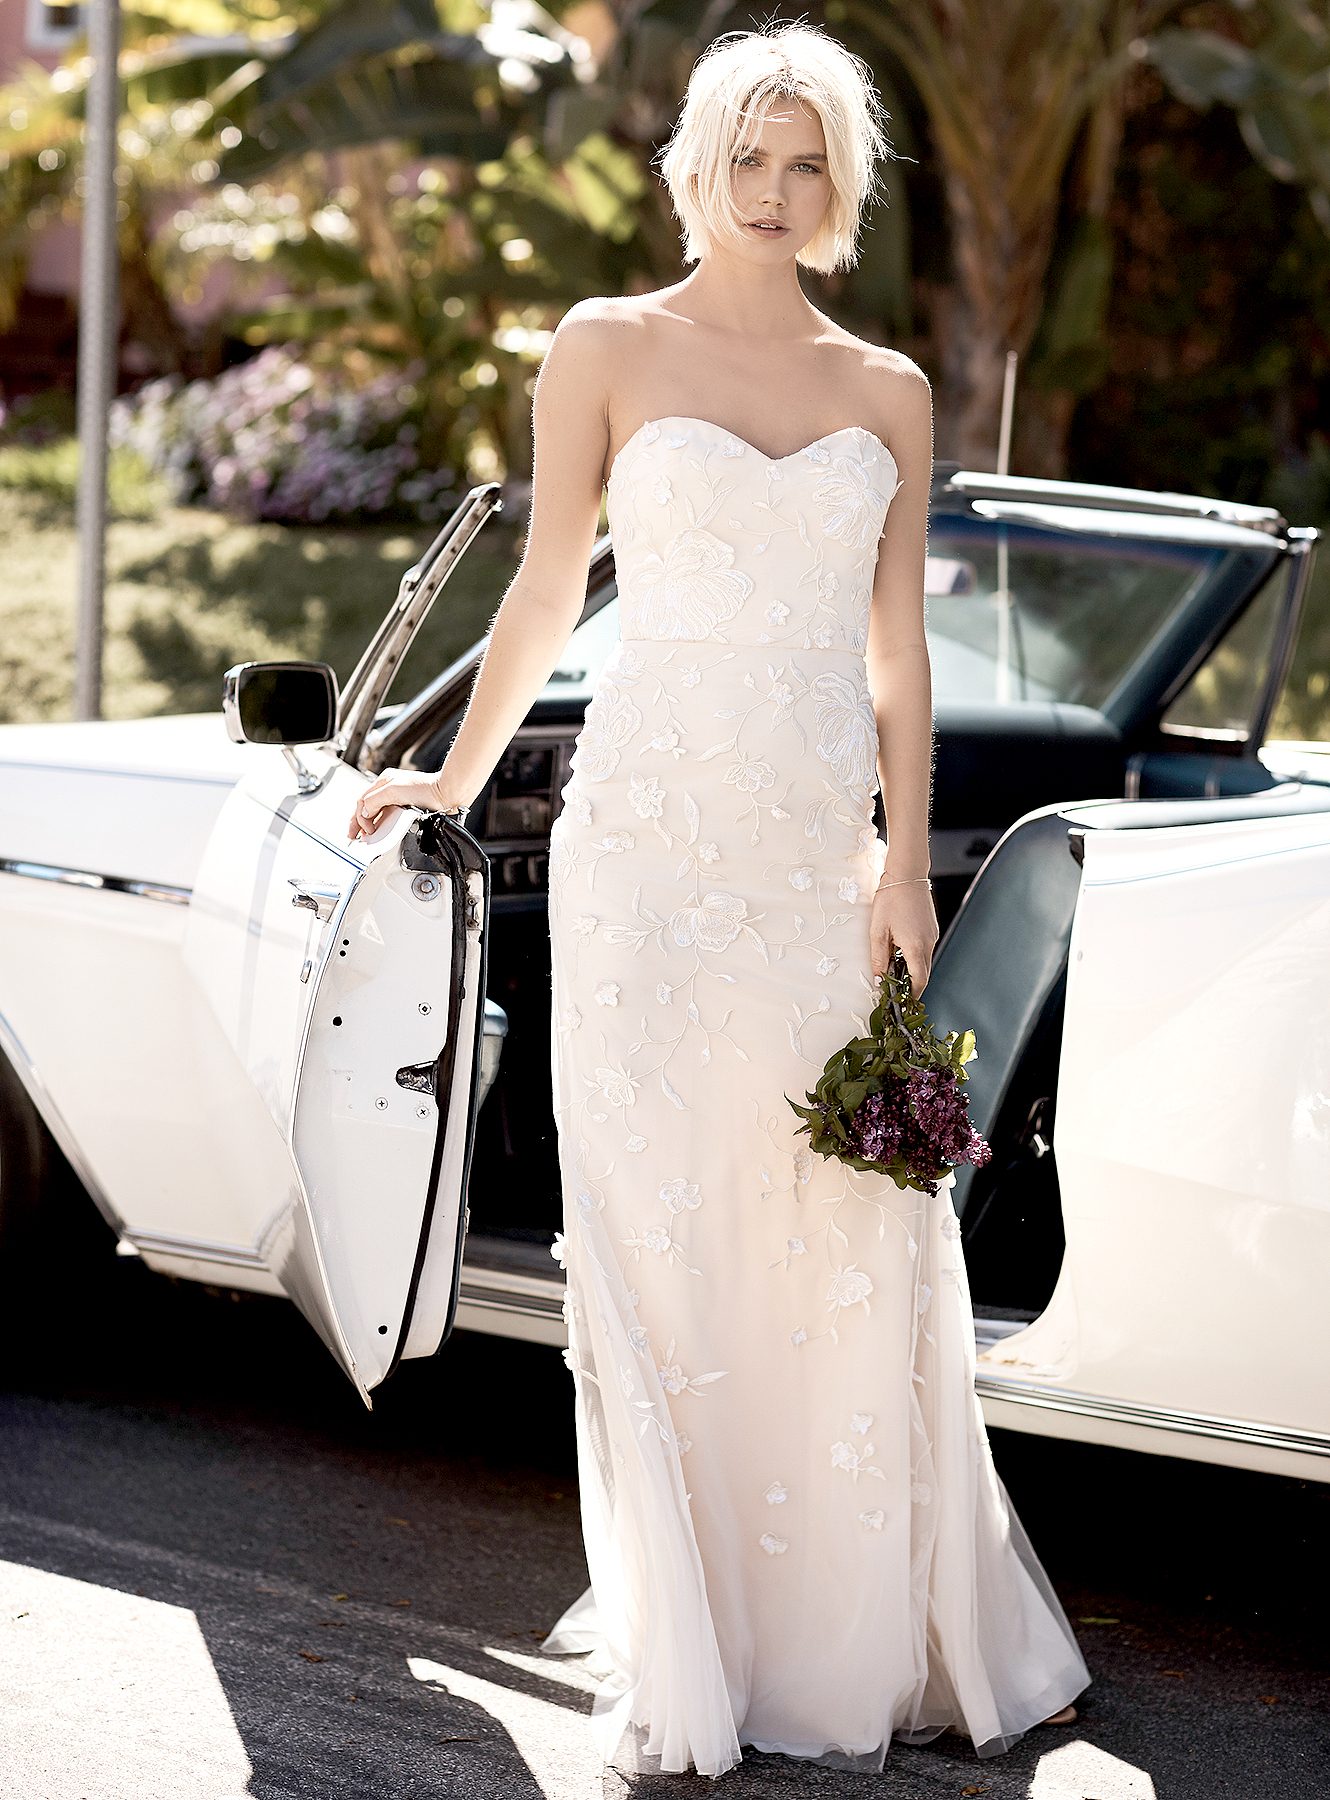 Floravere's R. Gilmore curve-hugging strapless gown.